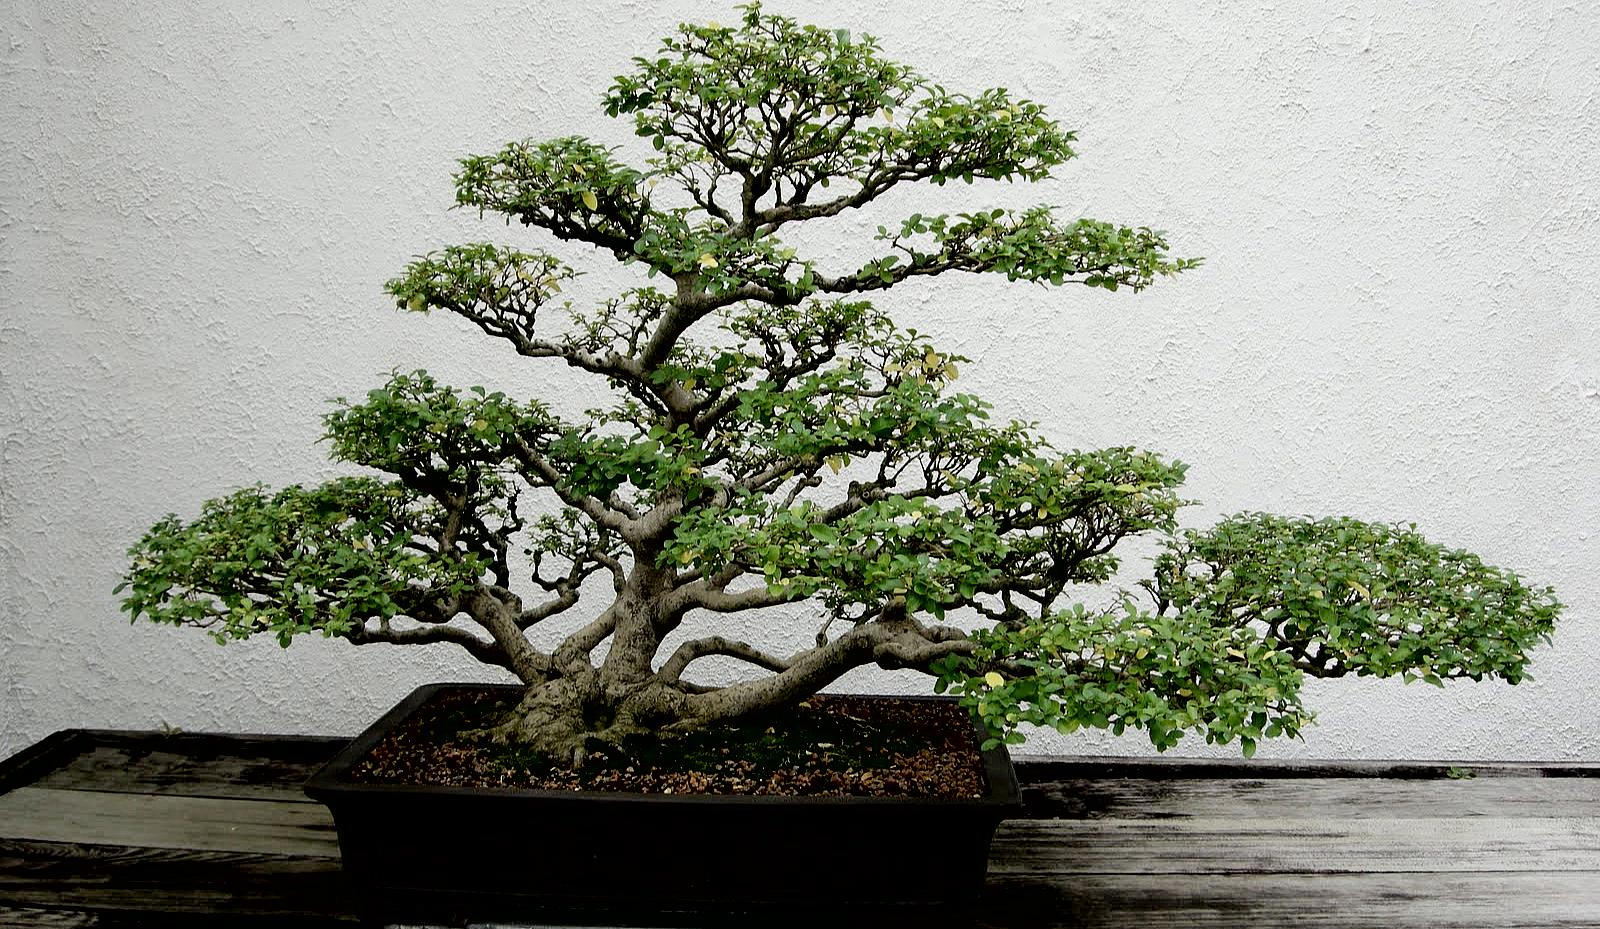 Symbol of Harmony and Elegance - Bonsai | How To Build A House: www.howtobuildahouseblog.com/bonsai-a-symbol-of-harmony-and-elegance